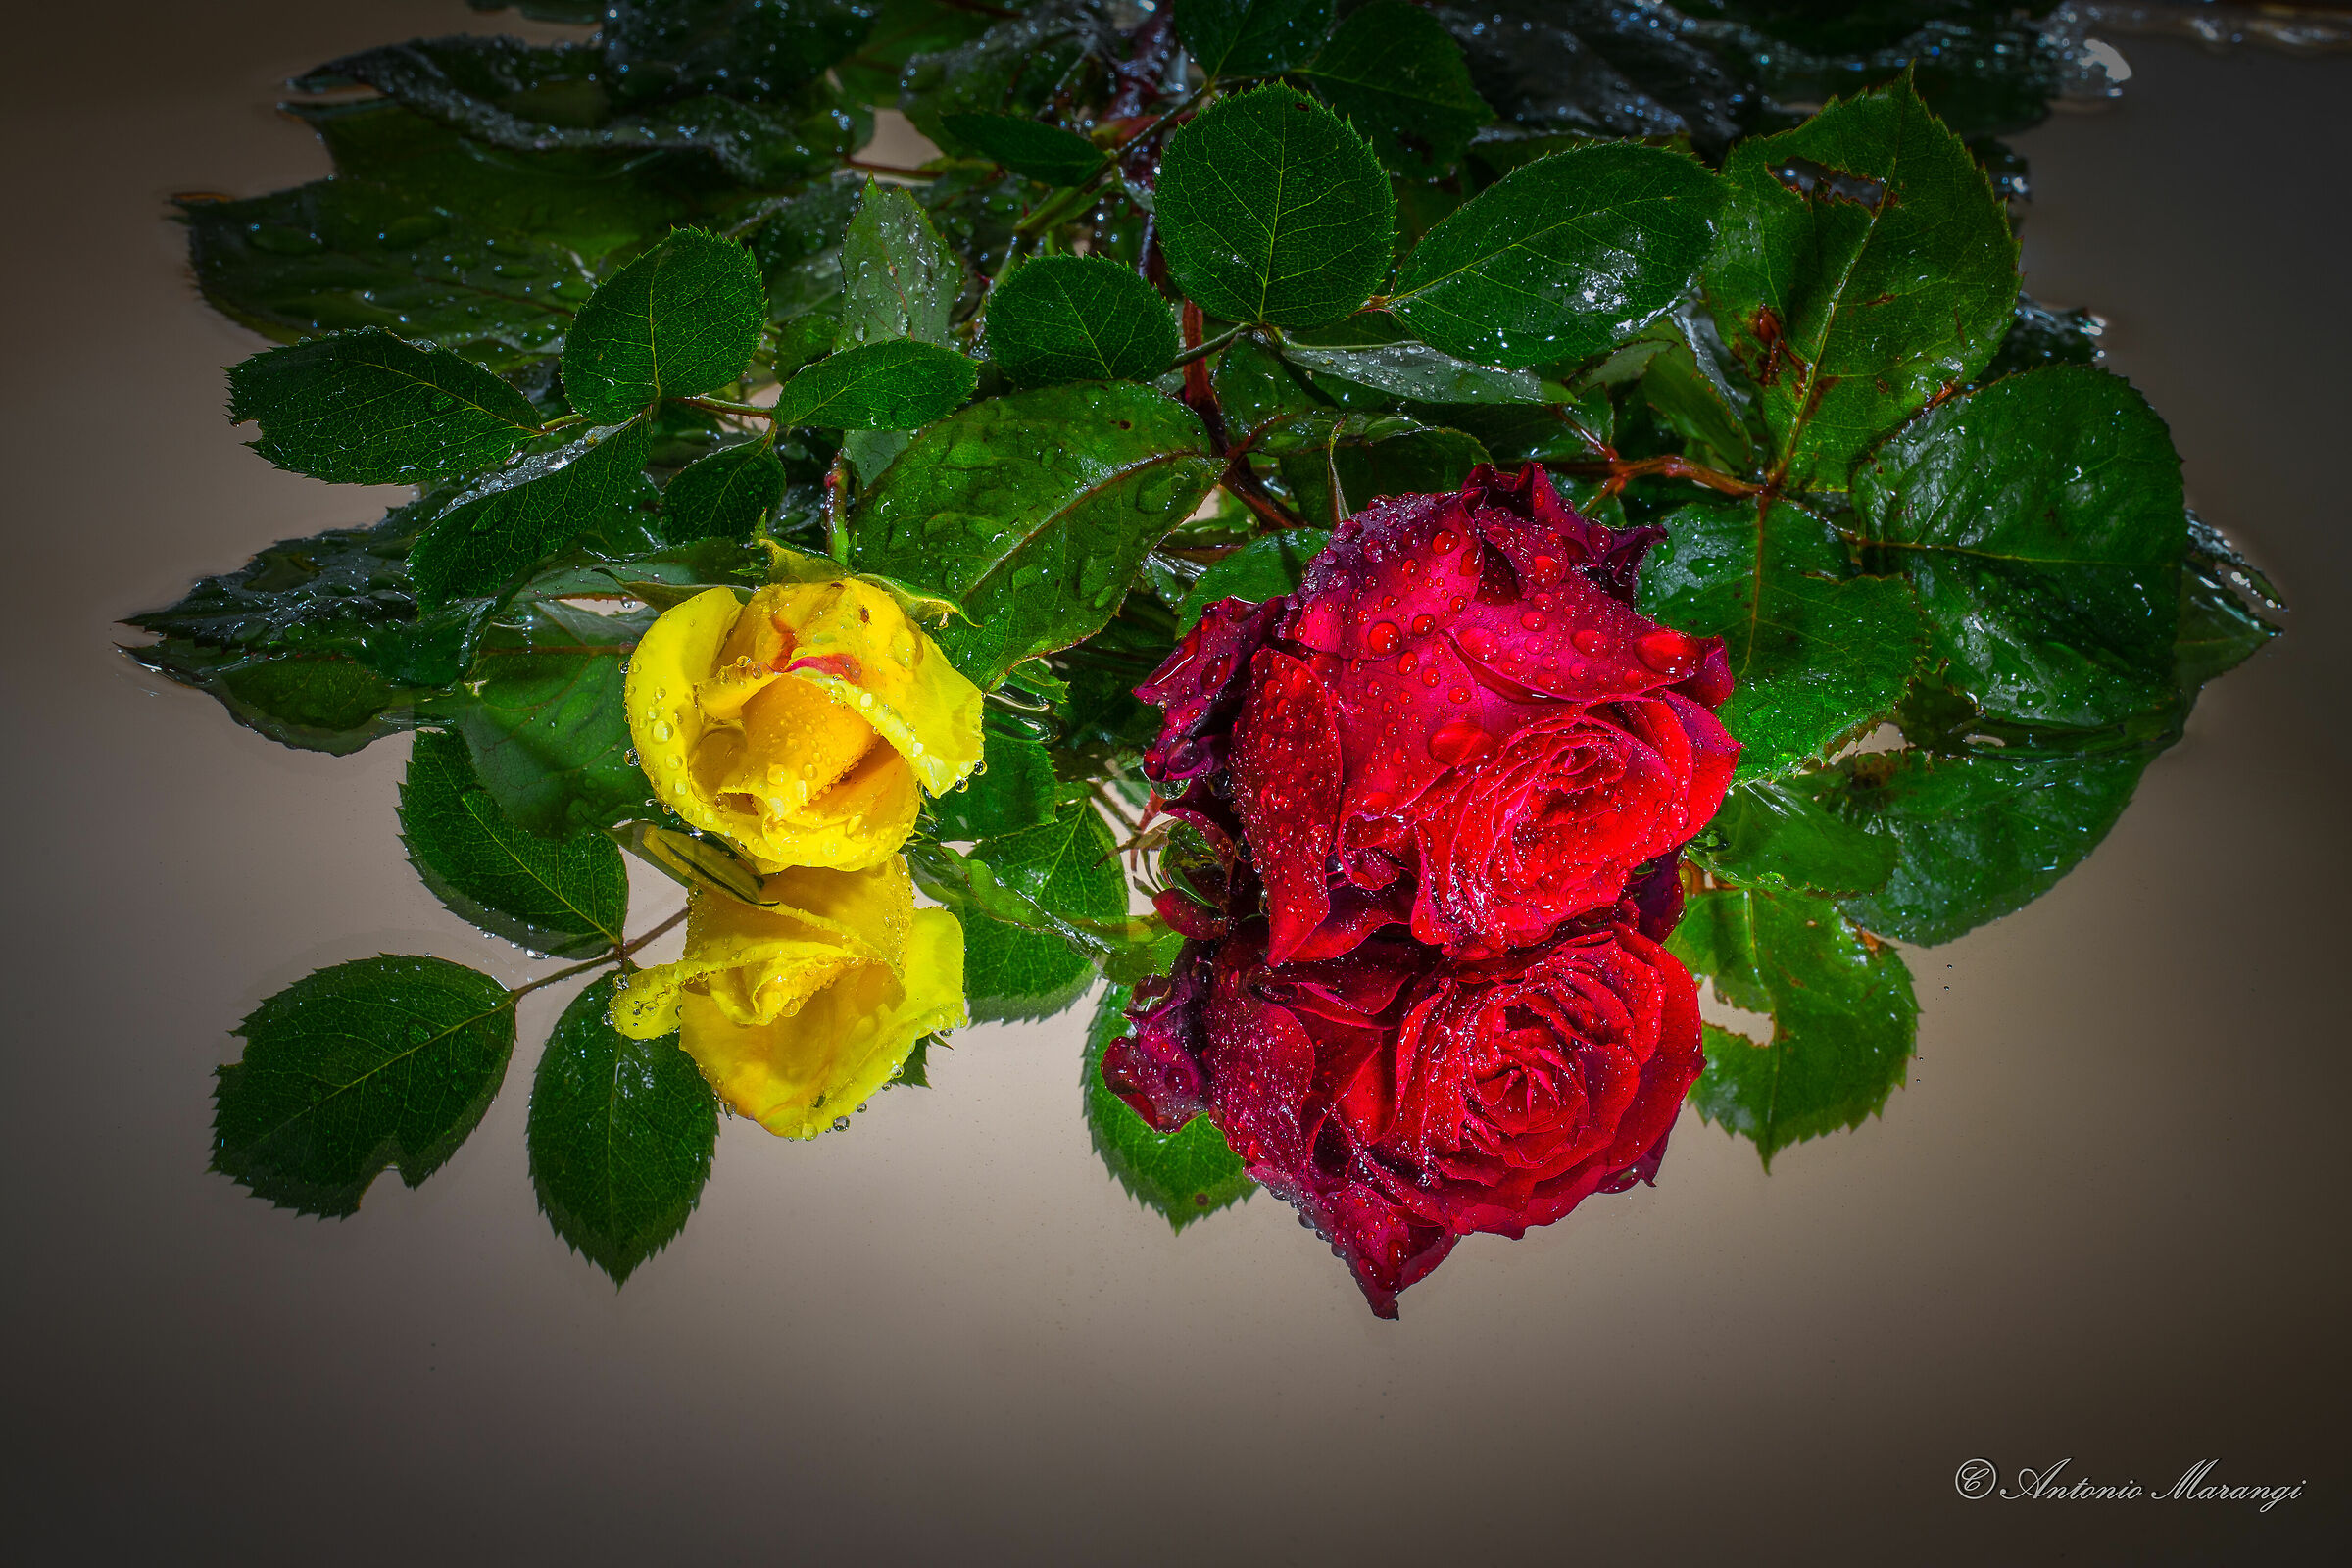 The Roses...